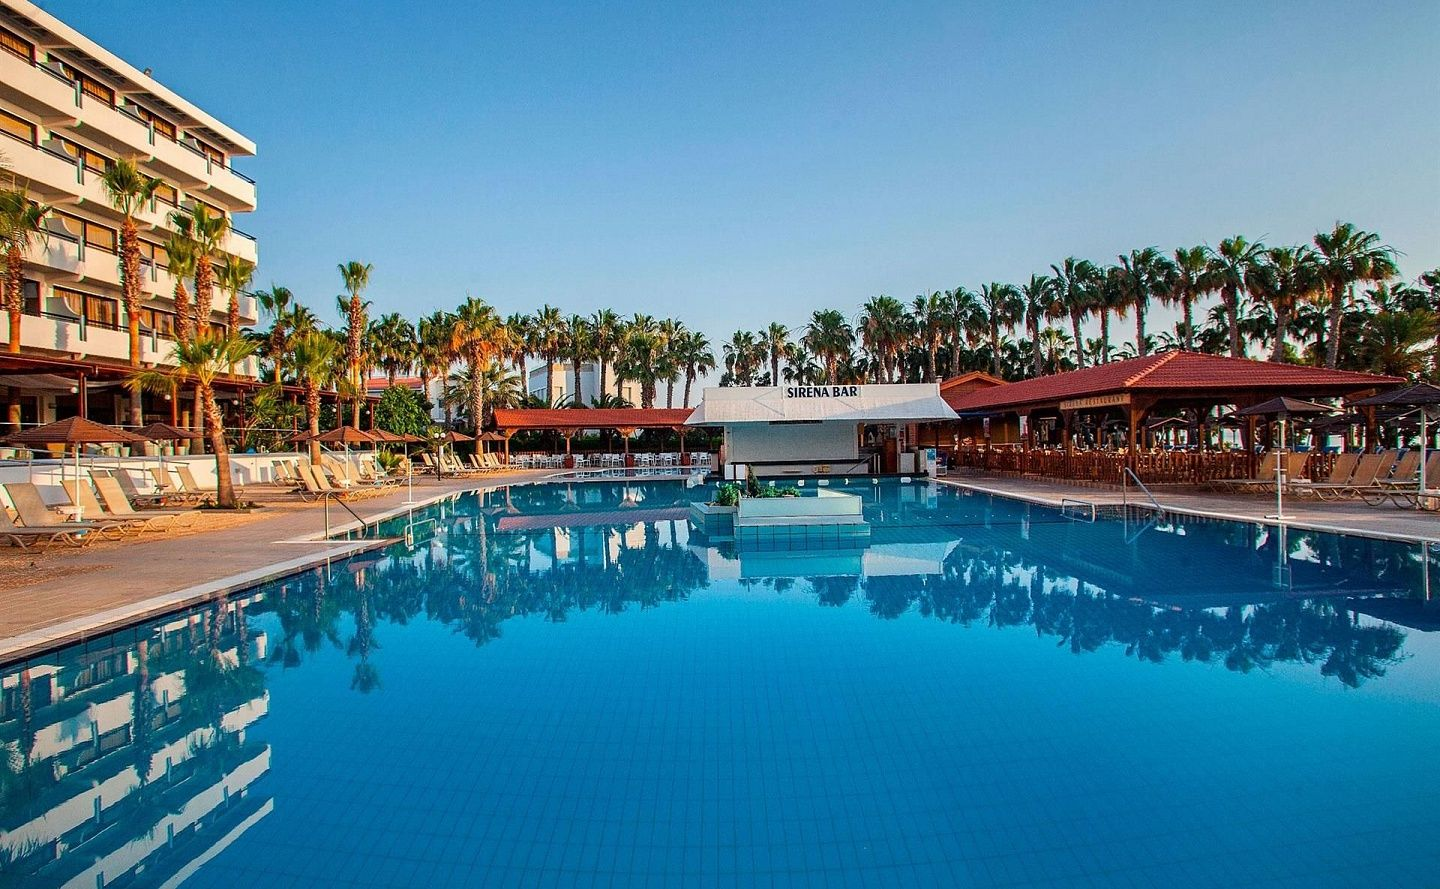 CAVO MARIS BEACH HOTEL 4 * - Изображение 2